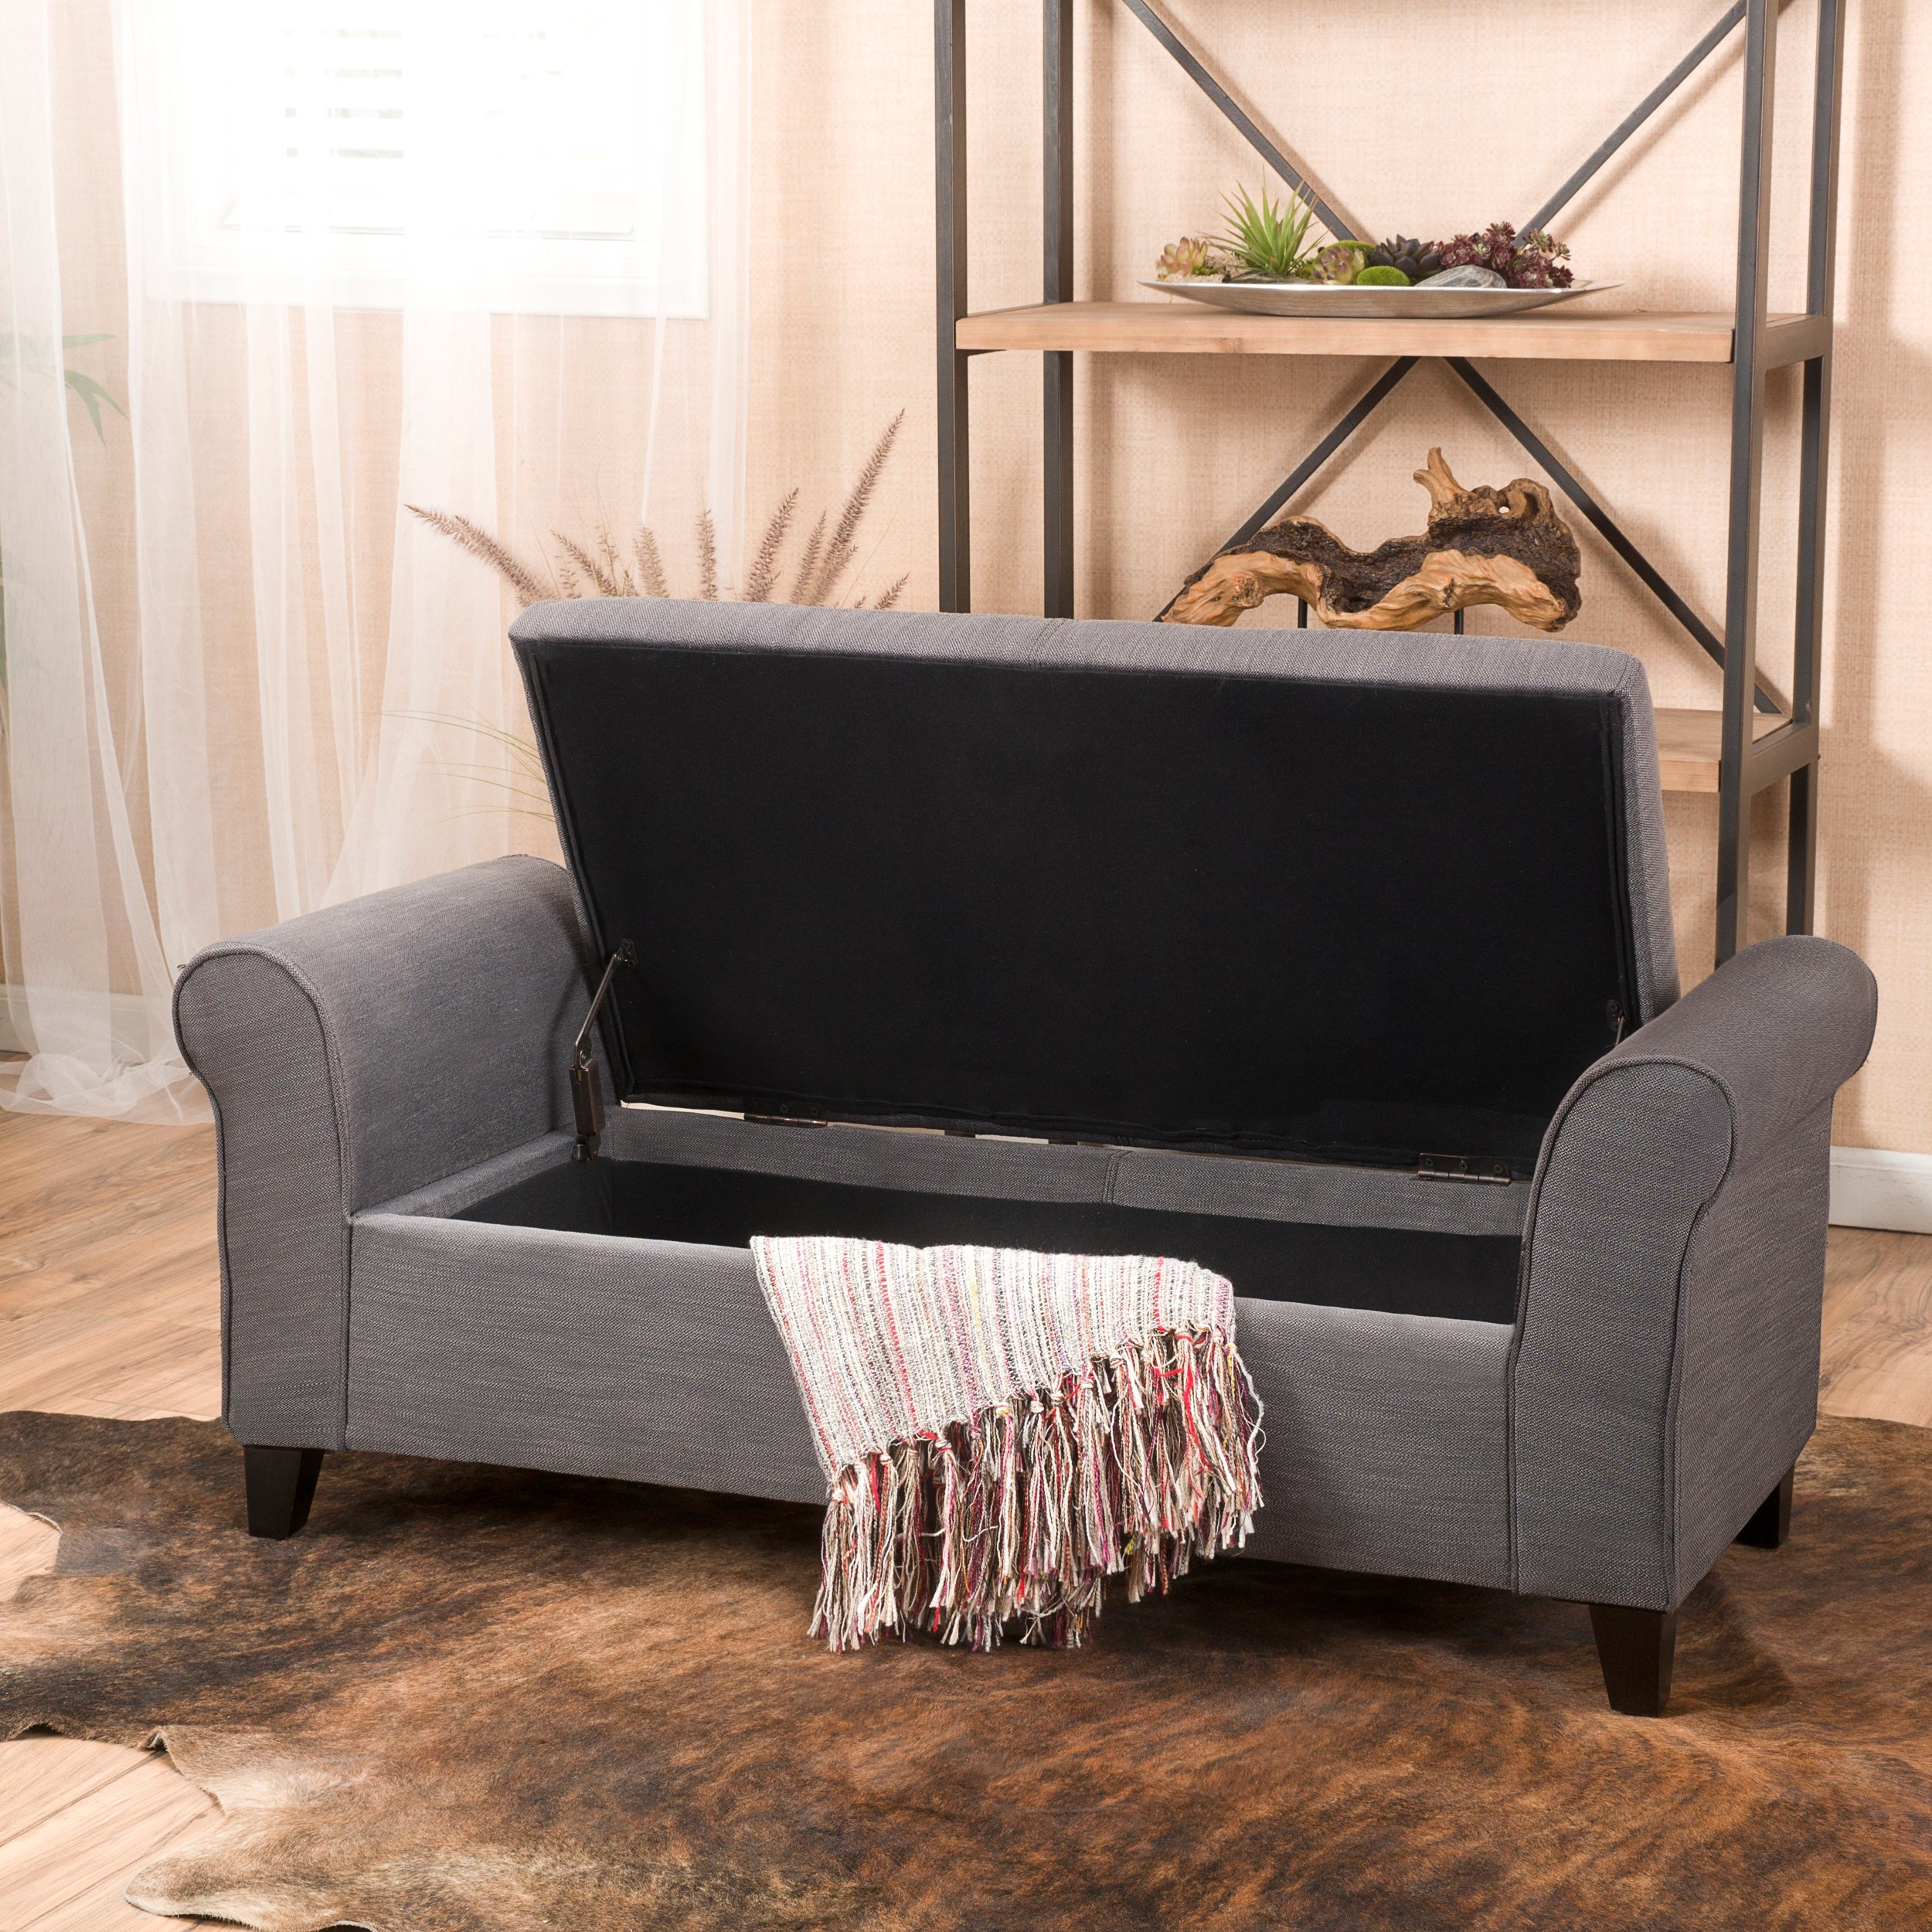 Danbury Grey Fabric Armed Storage Ottoman Bench